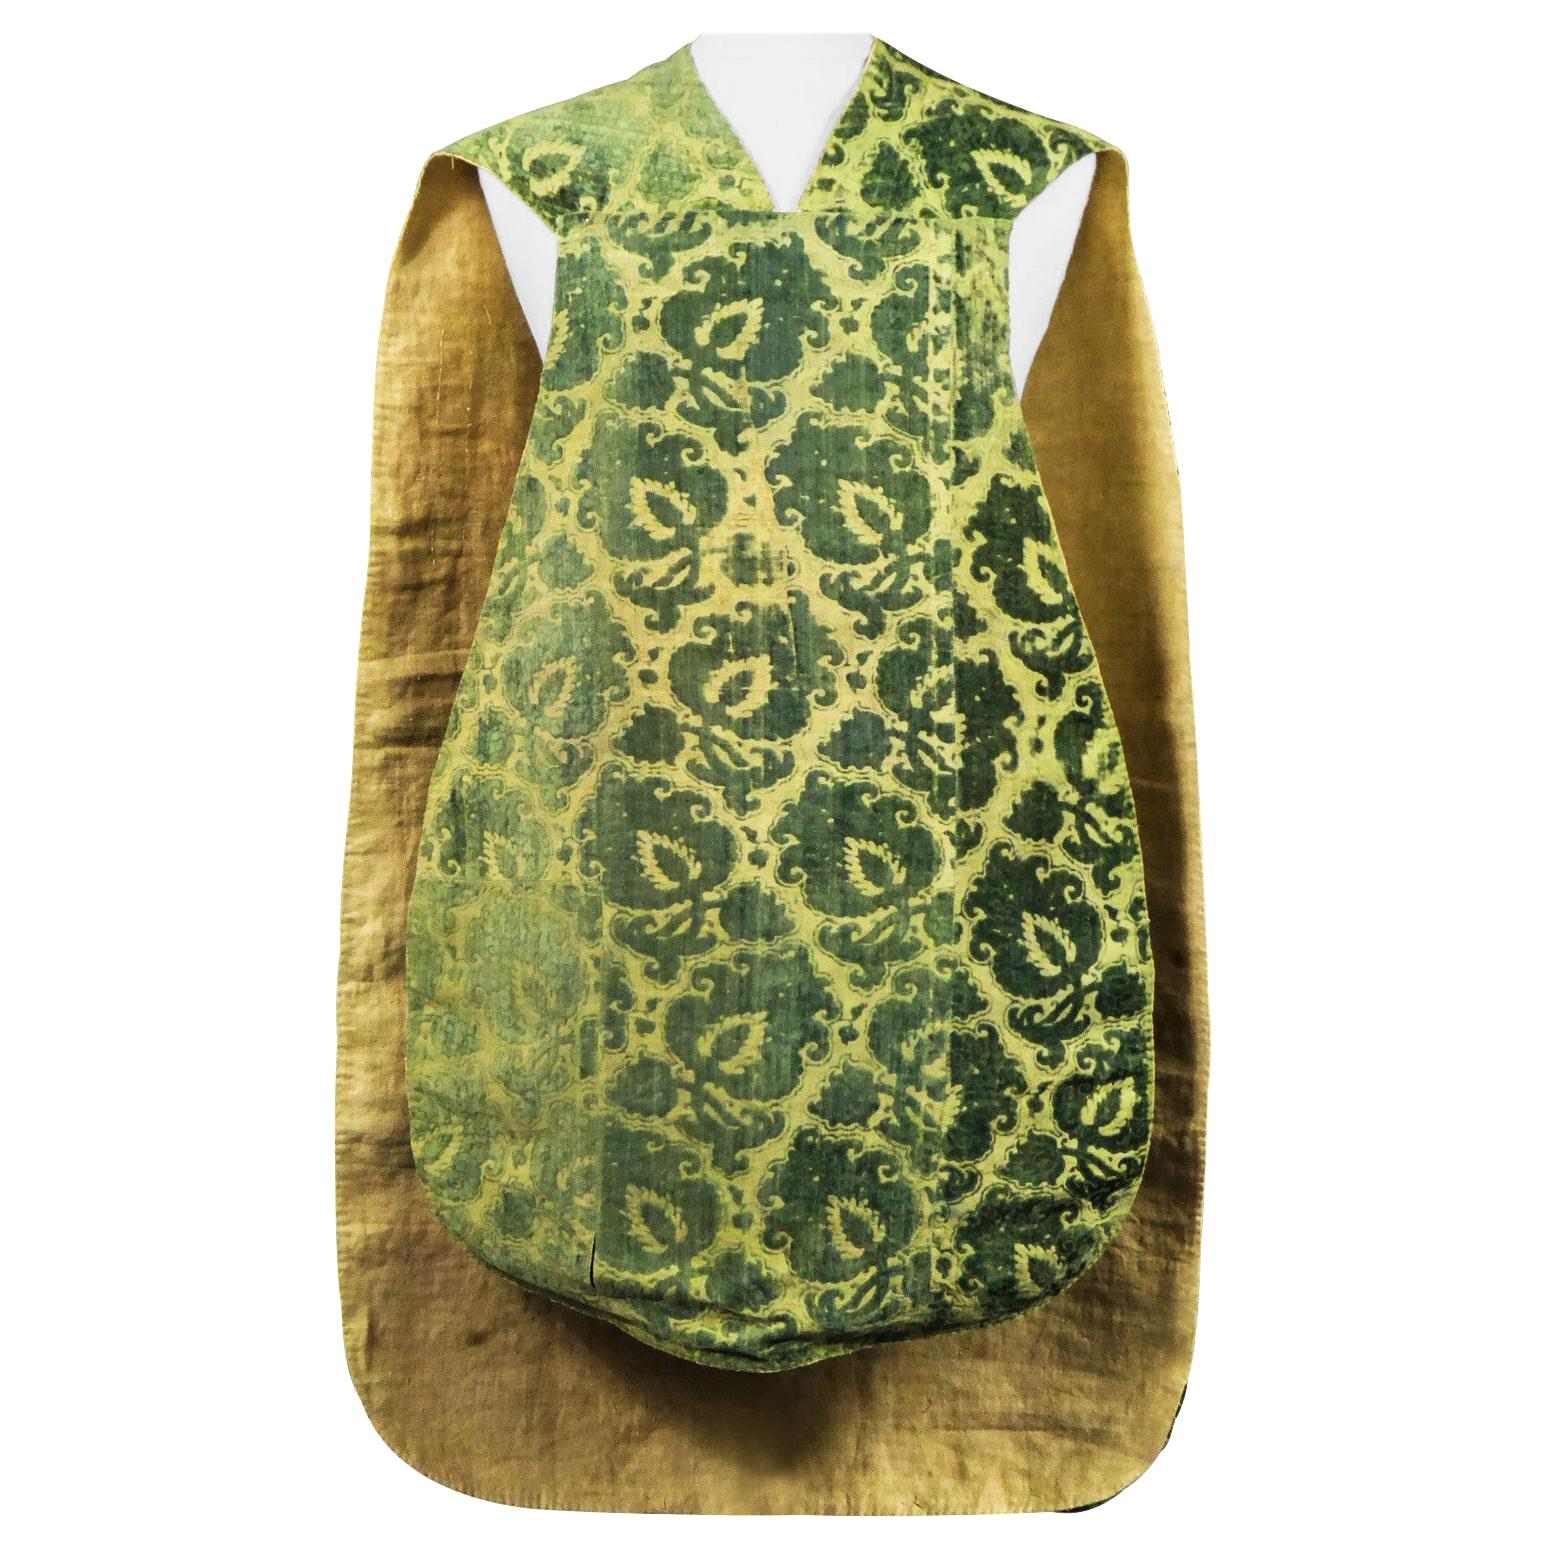 Rare Complete Chasuble in Chiseled Cut Velvet - Italy Late 16th Century